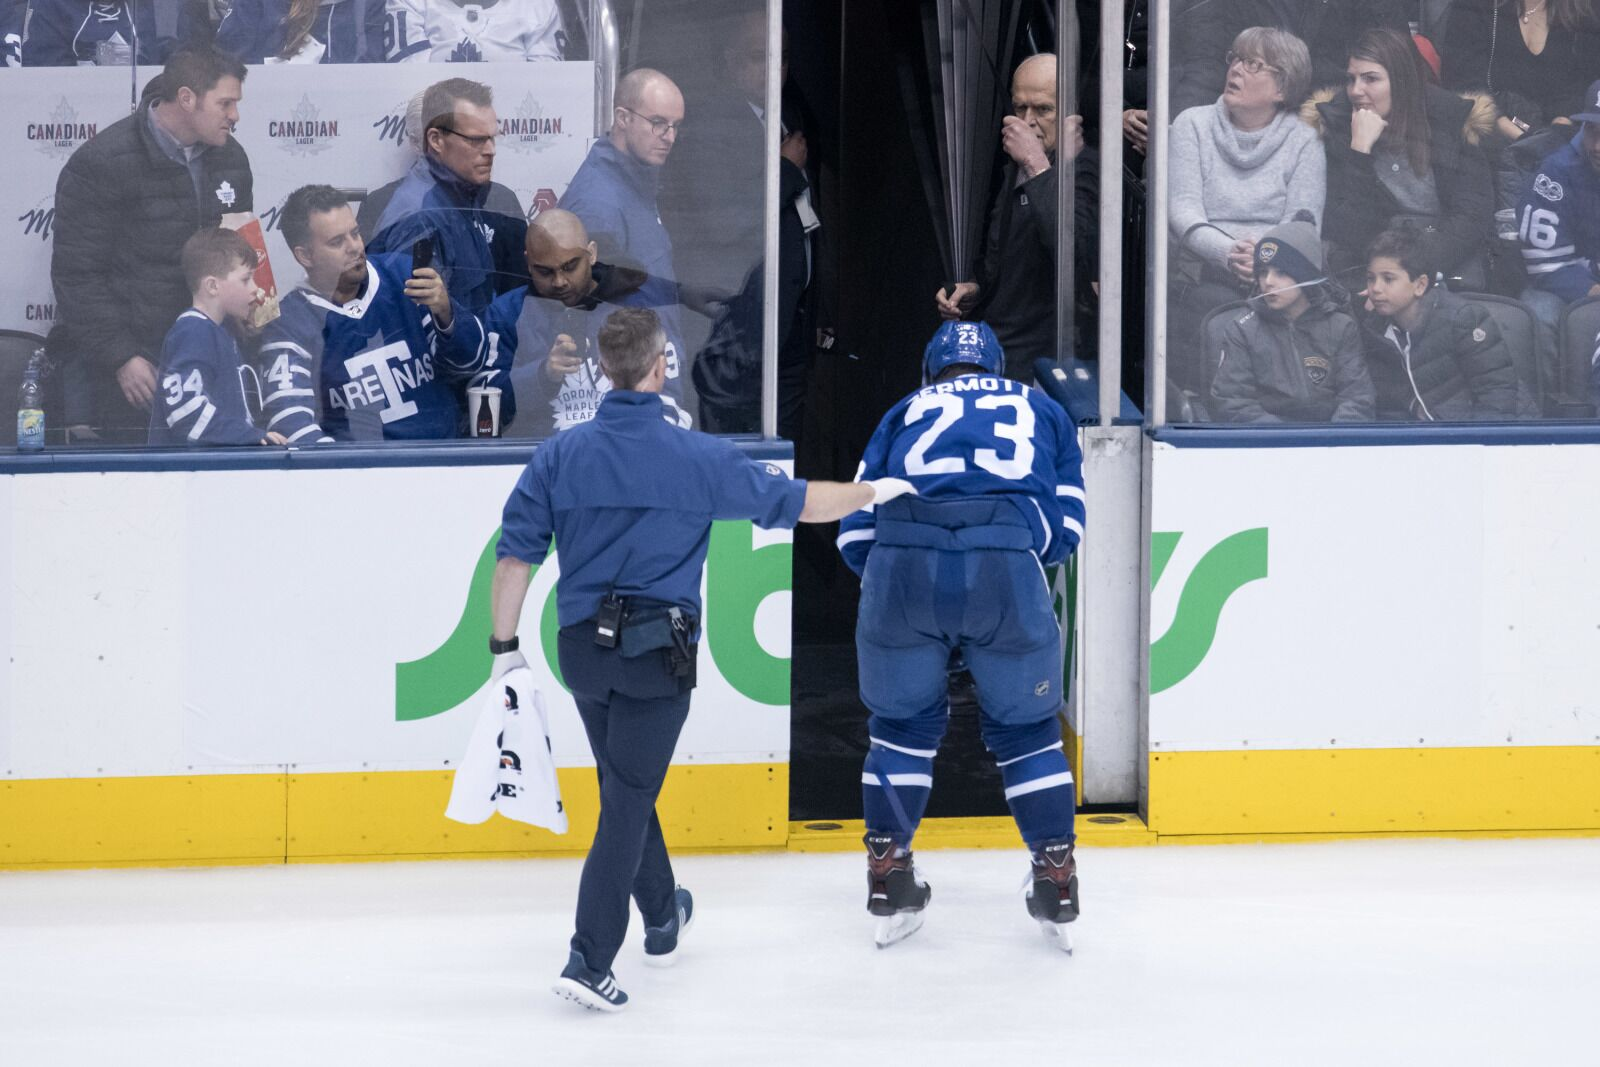 Toronto Maple Leafs: What Do You Think? – Injuries Follow Up